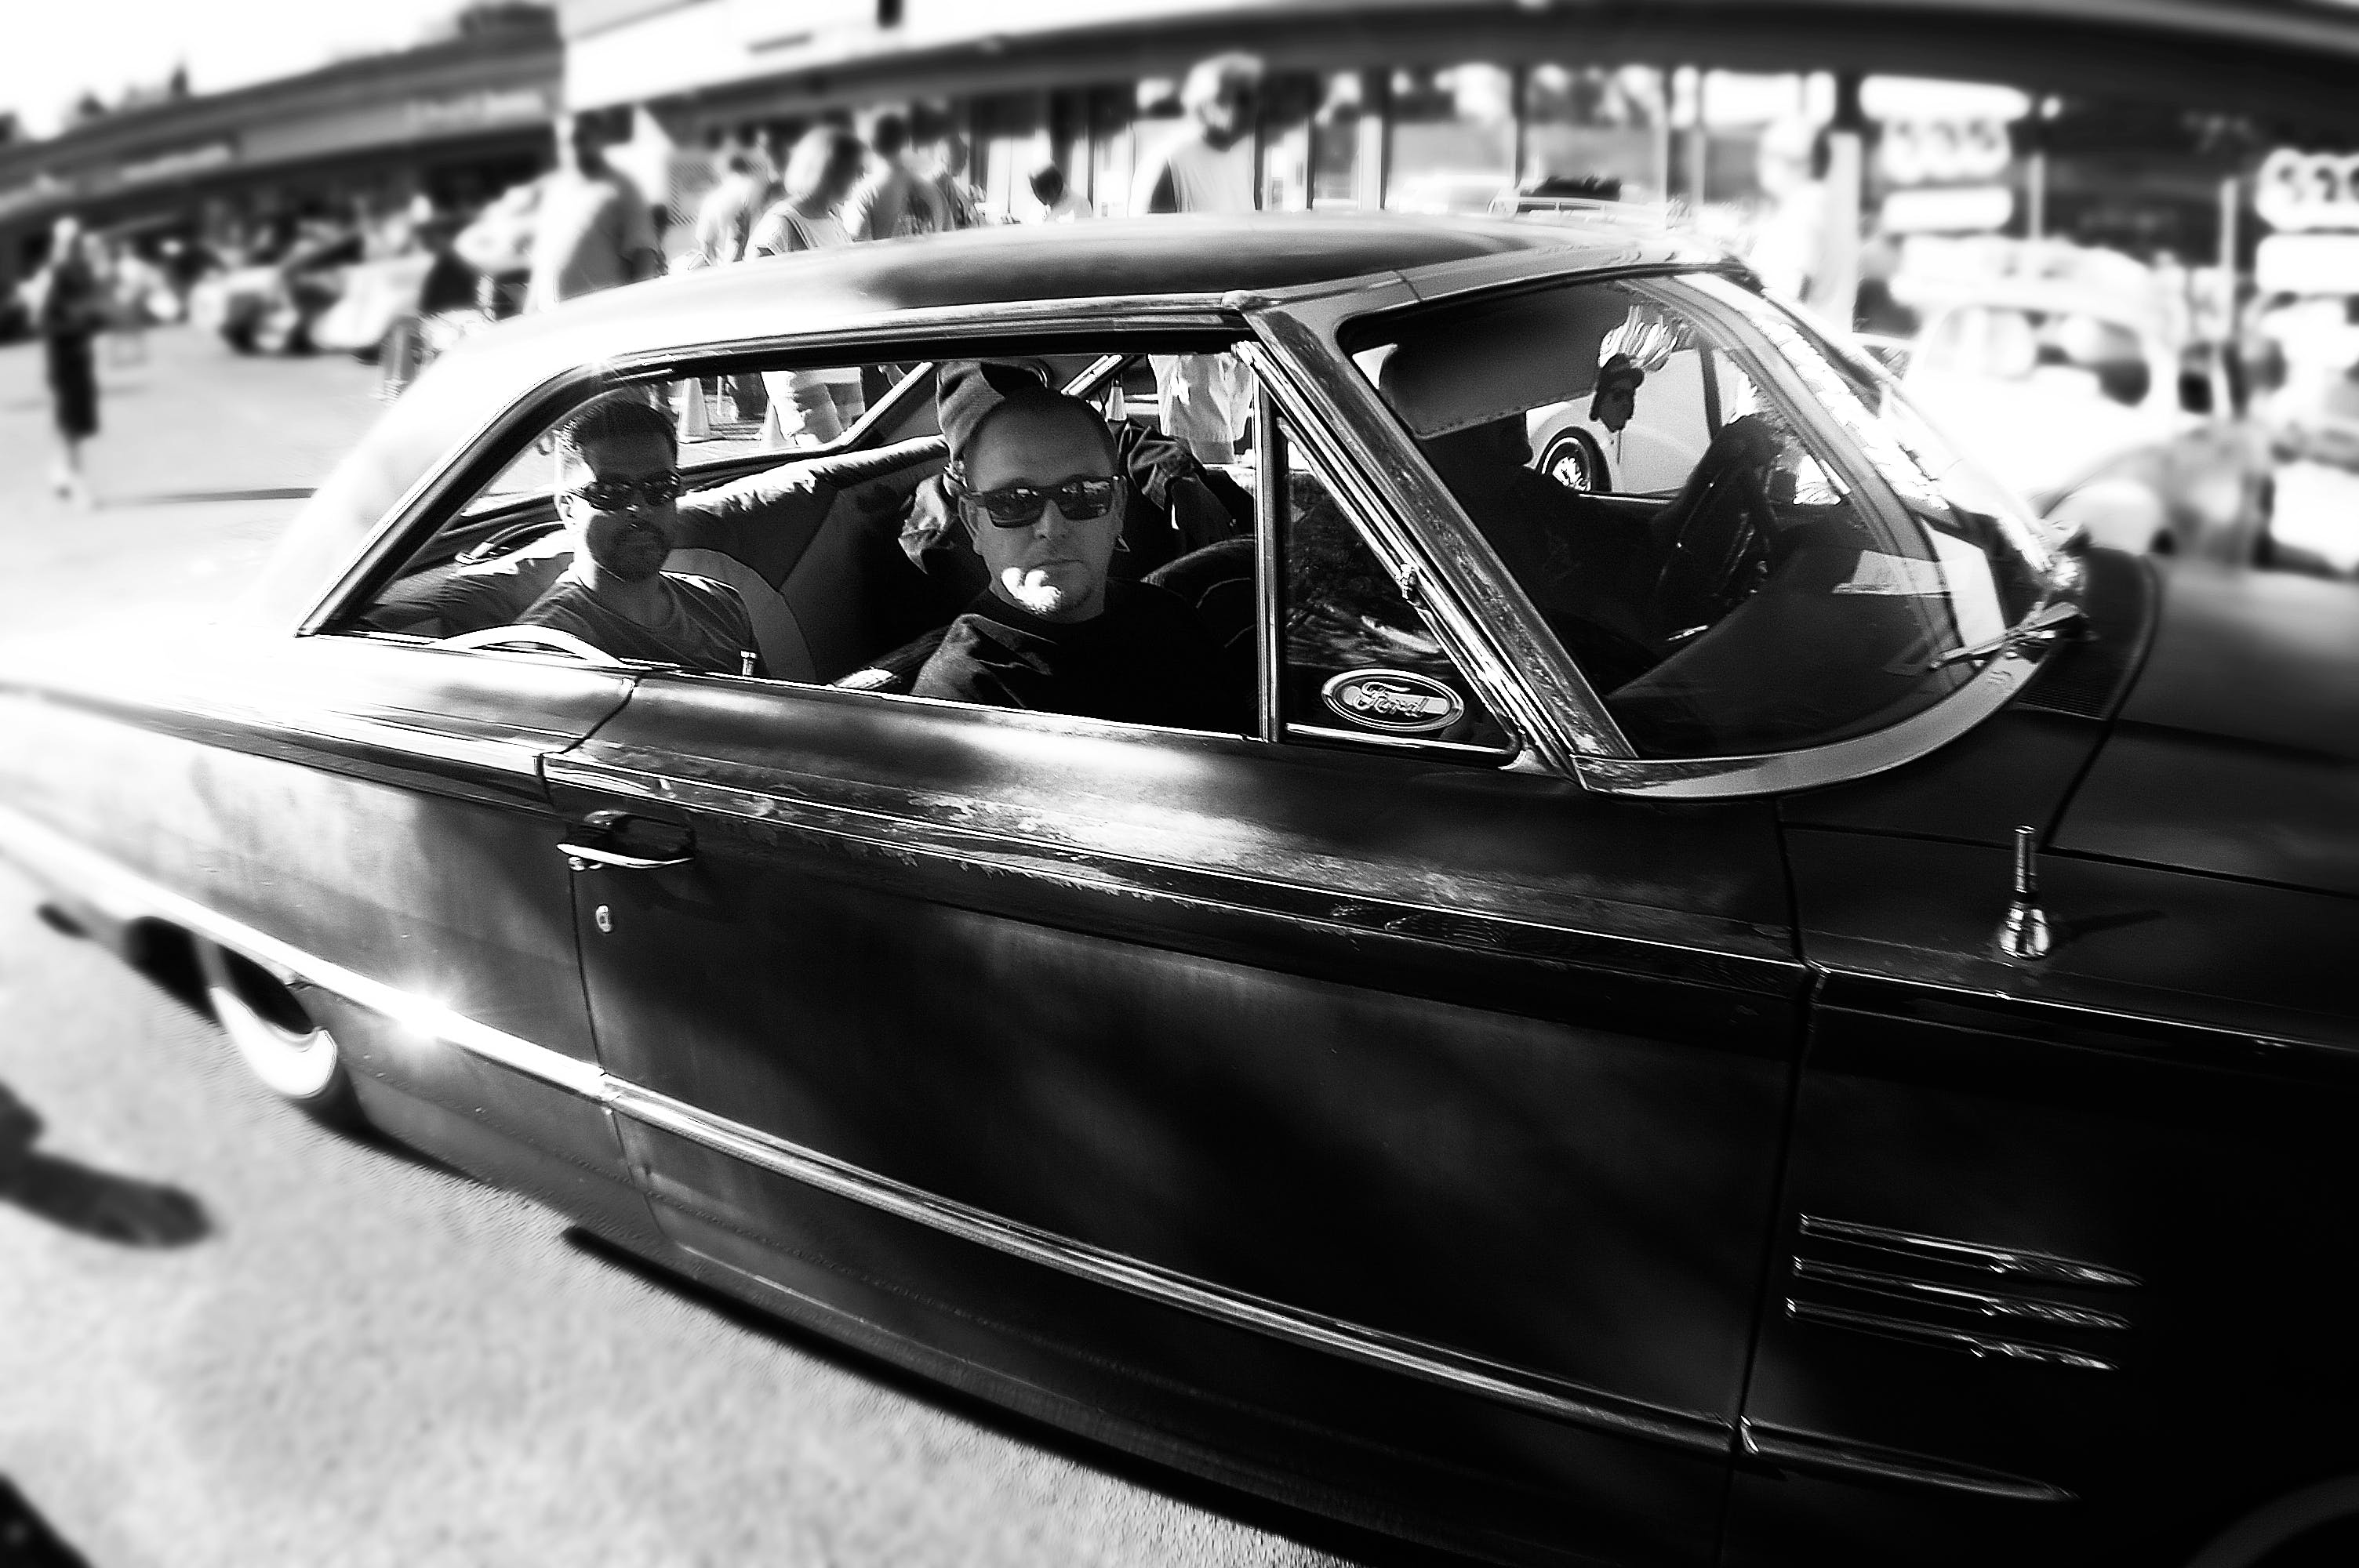 Free stock photo of black-and-white, car, car show, cruise